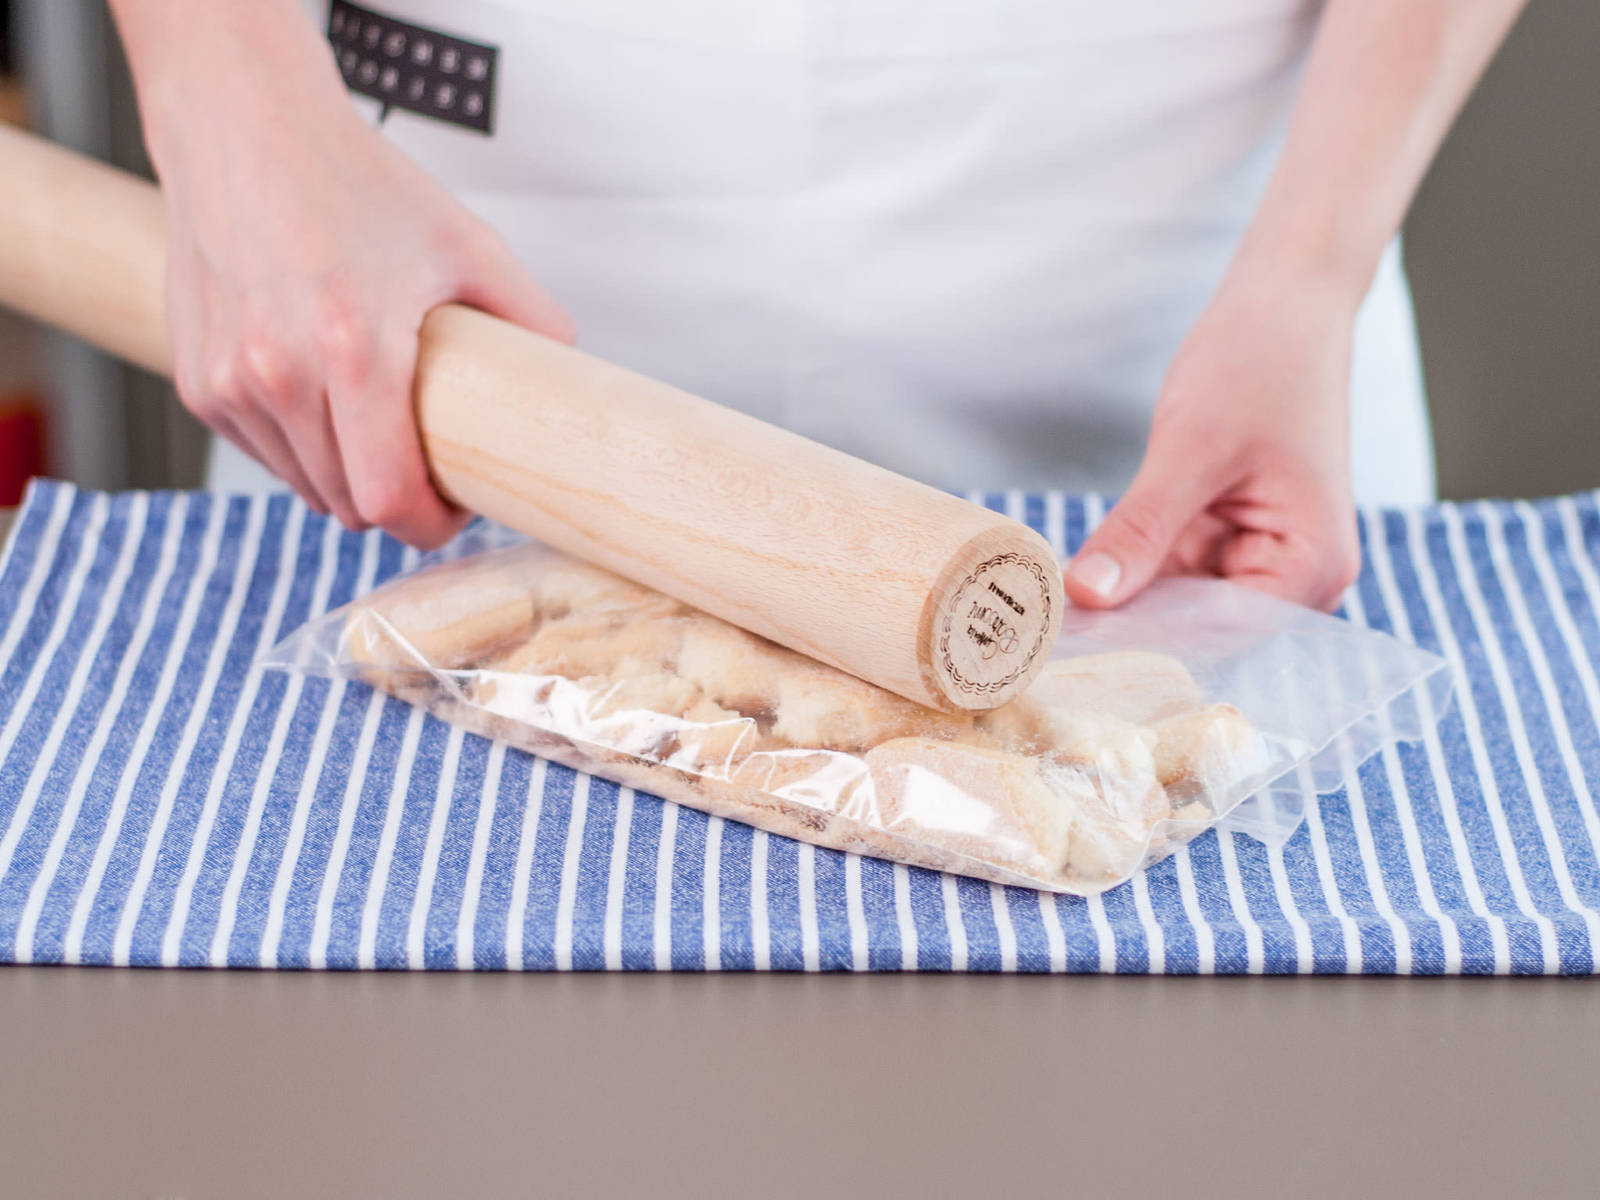 Place ladyfingers into a freezer bag. Tightly seal bag and crush roughly with a rolling pin.